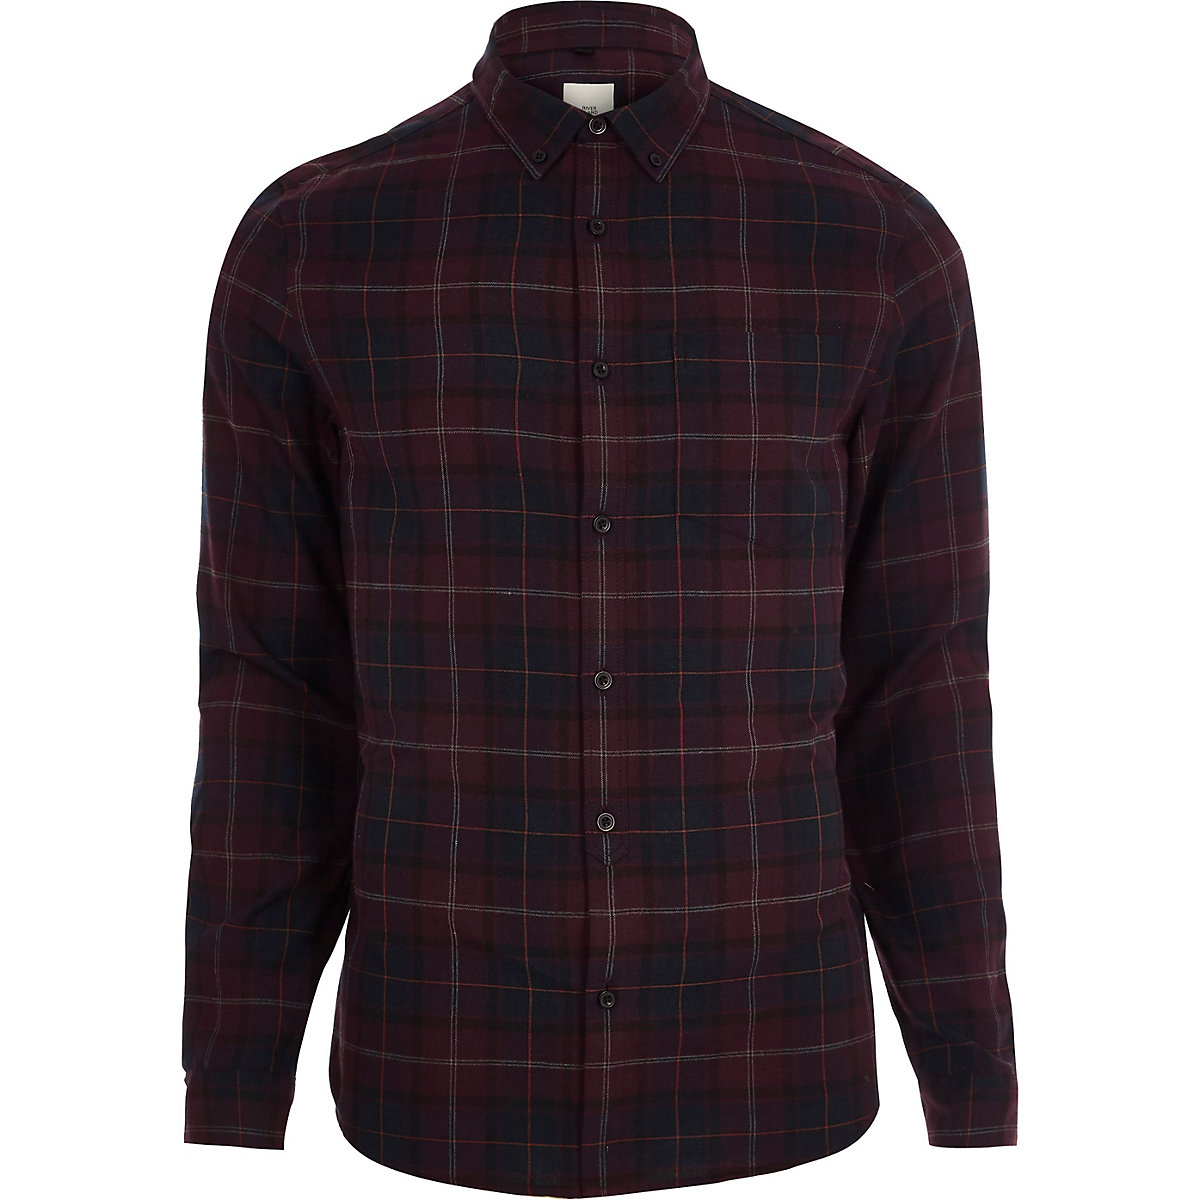 Burgundy check long sleeve shirt